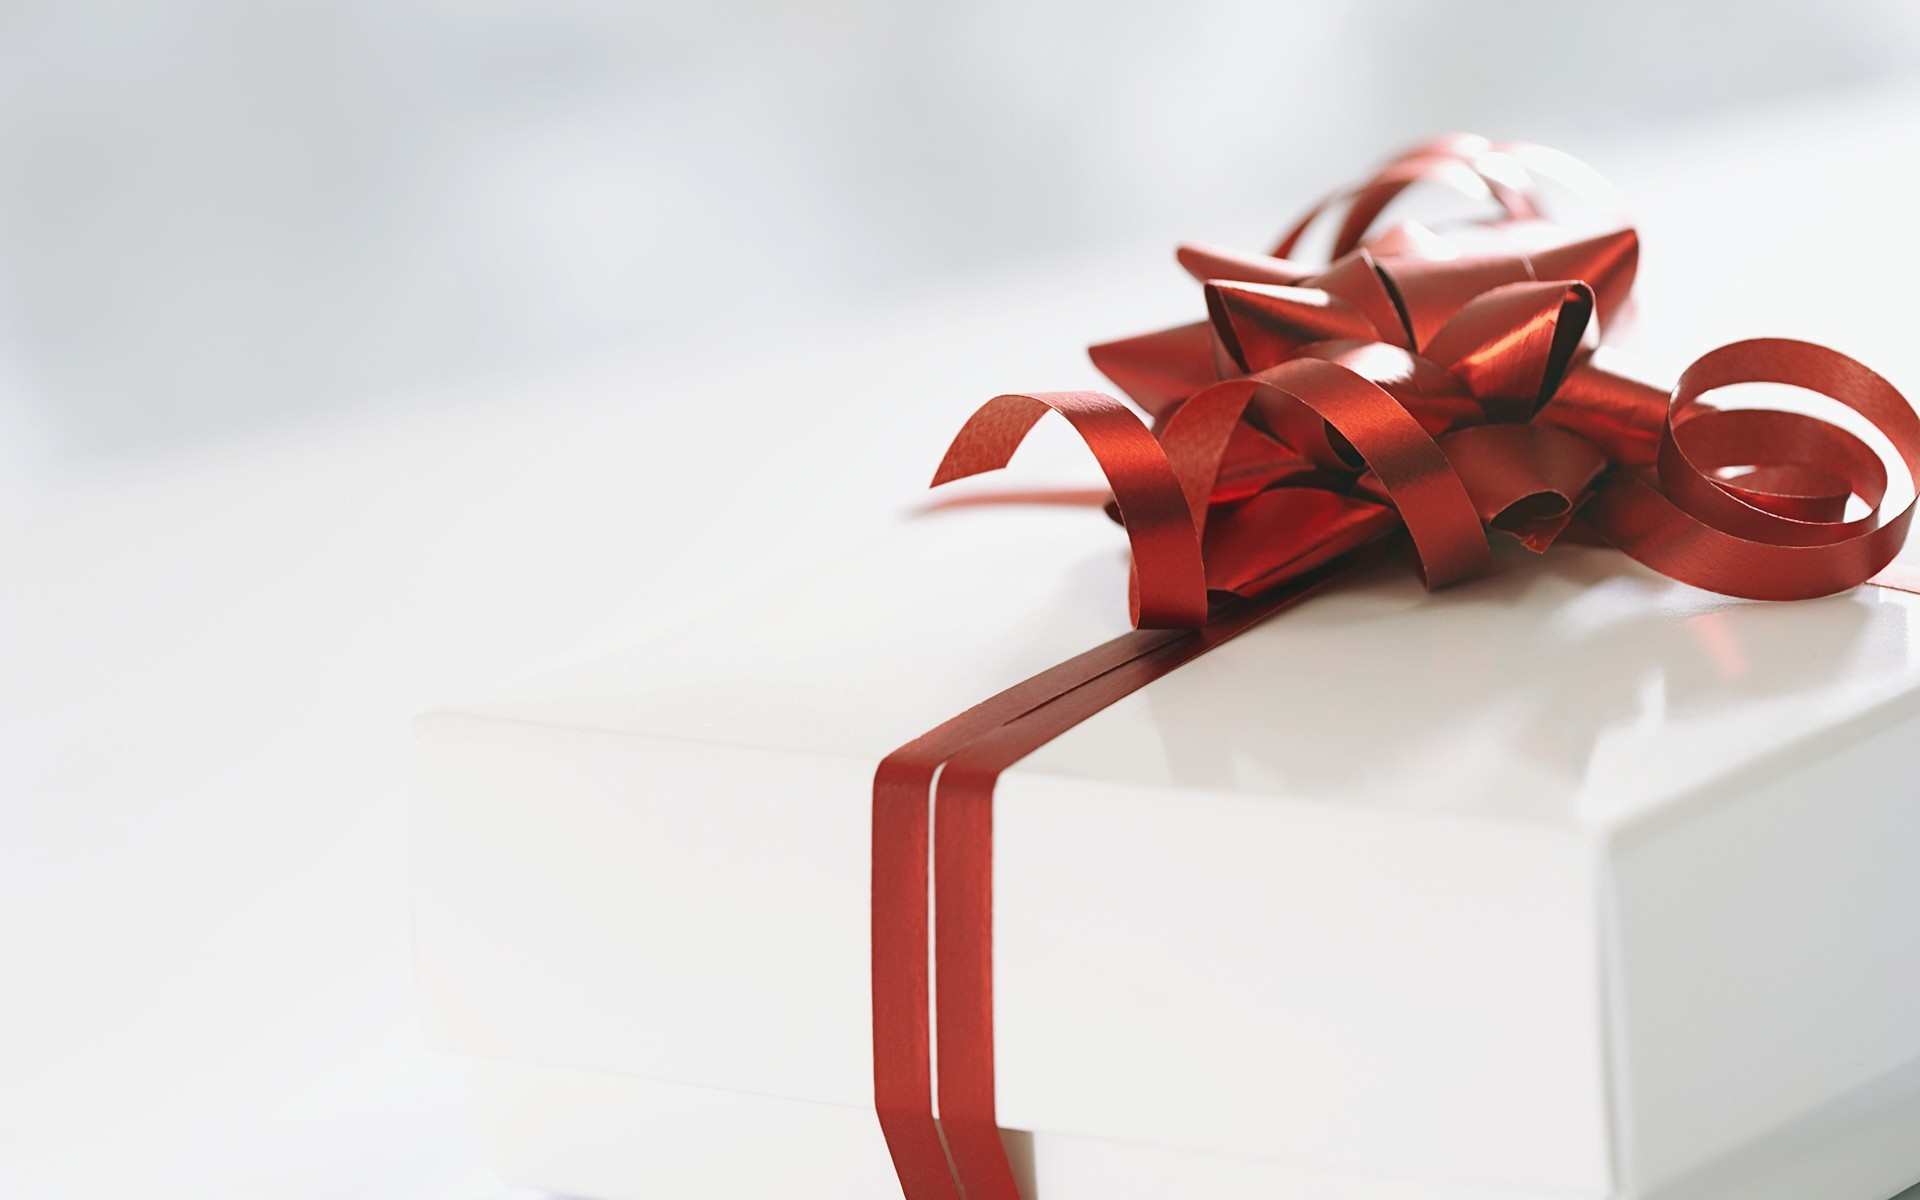 Res: 1920x1200, Christmas Gift Boxes Wallpaper (02)